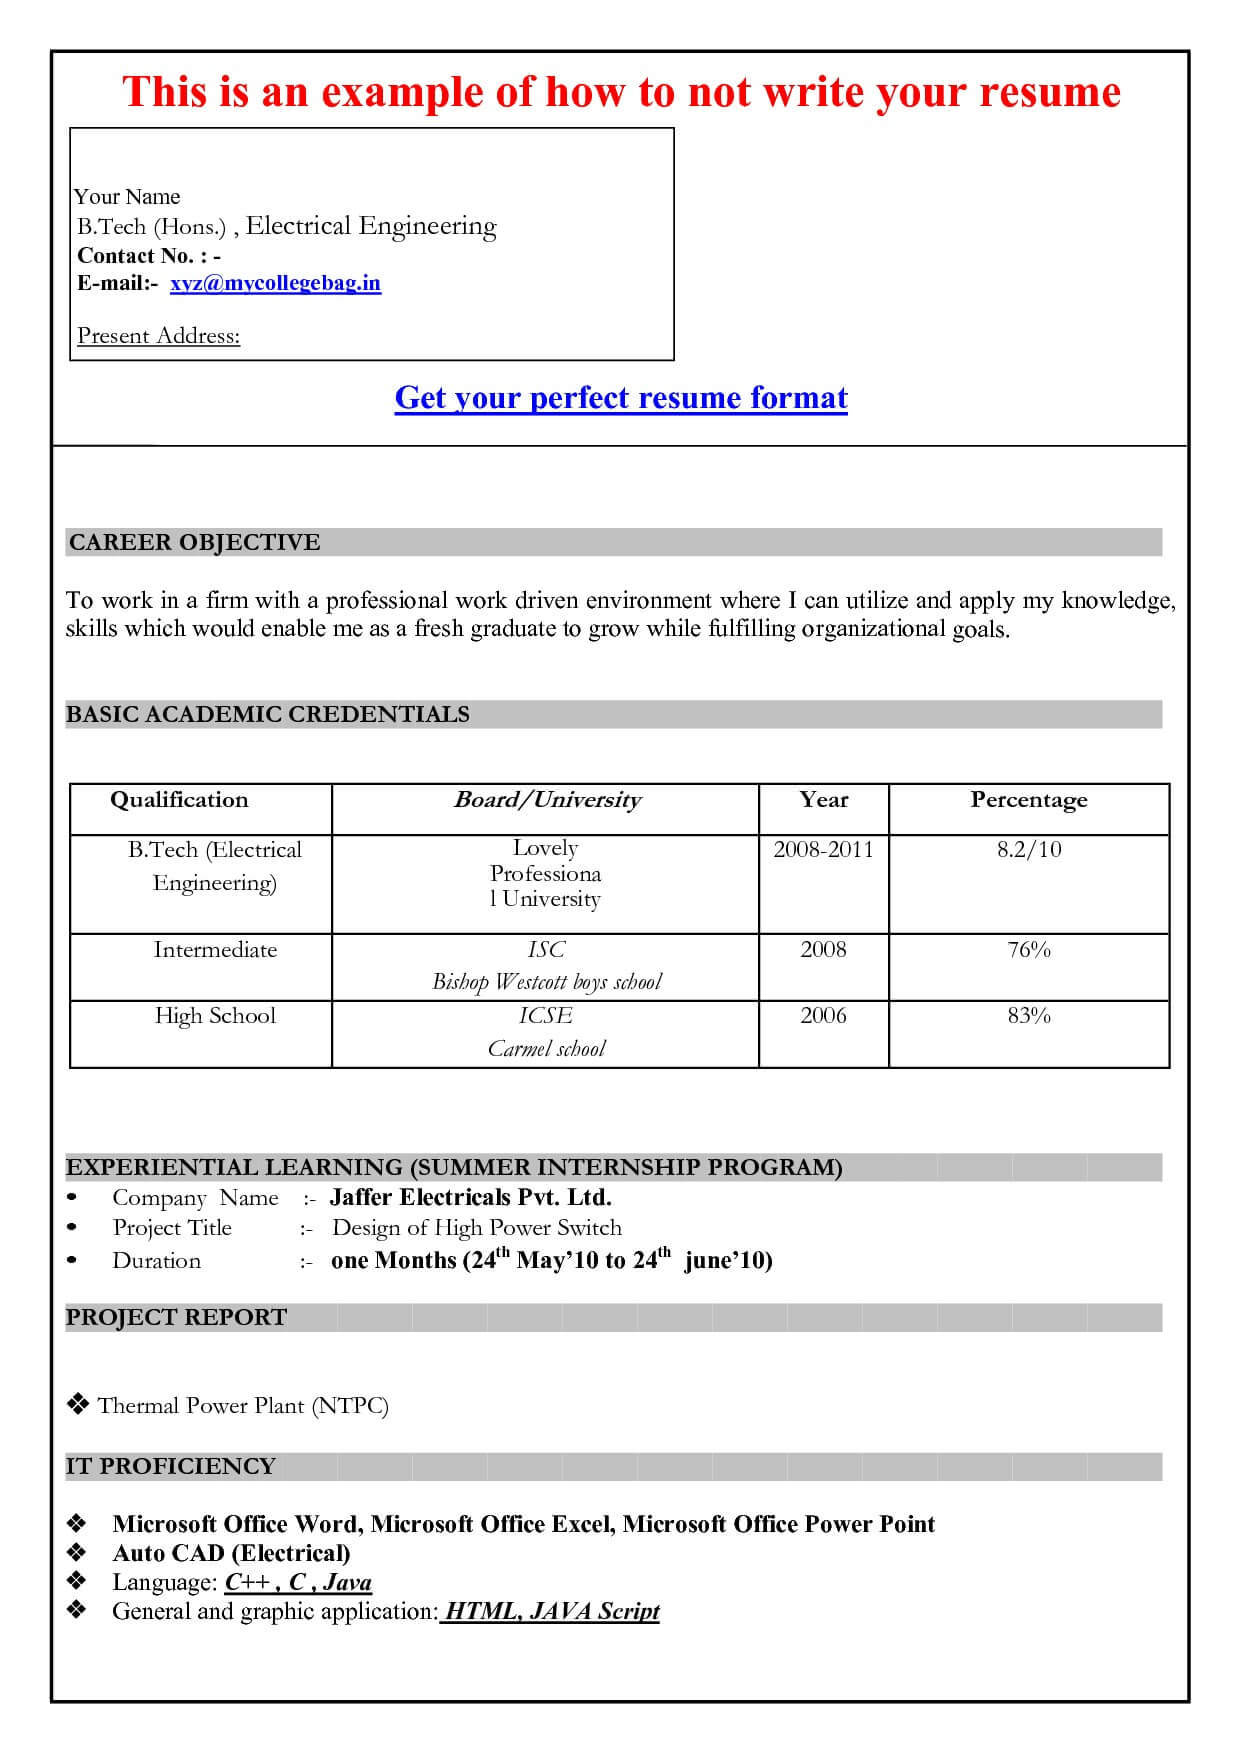 003 Resume Layout Word Template Microsoft Ideas Templates Intended For Resume Templates Word 2007